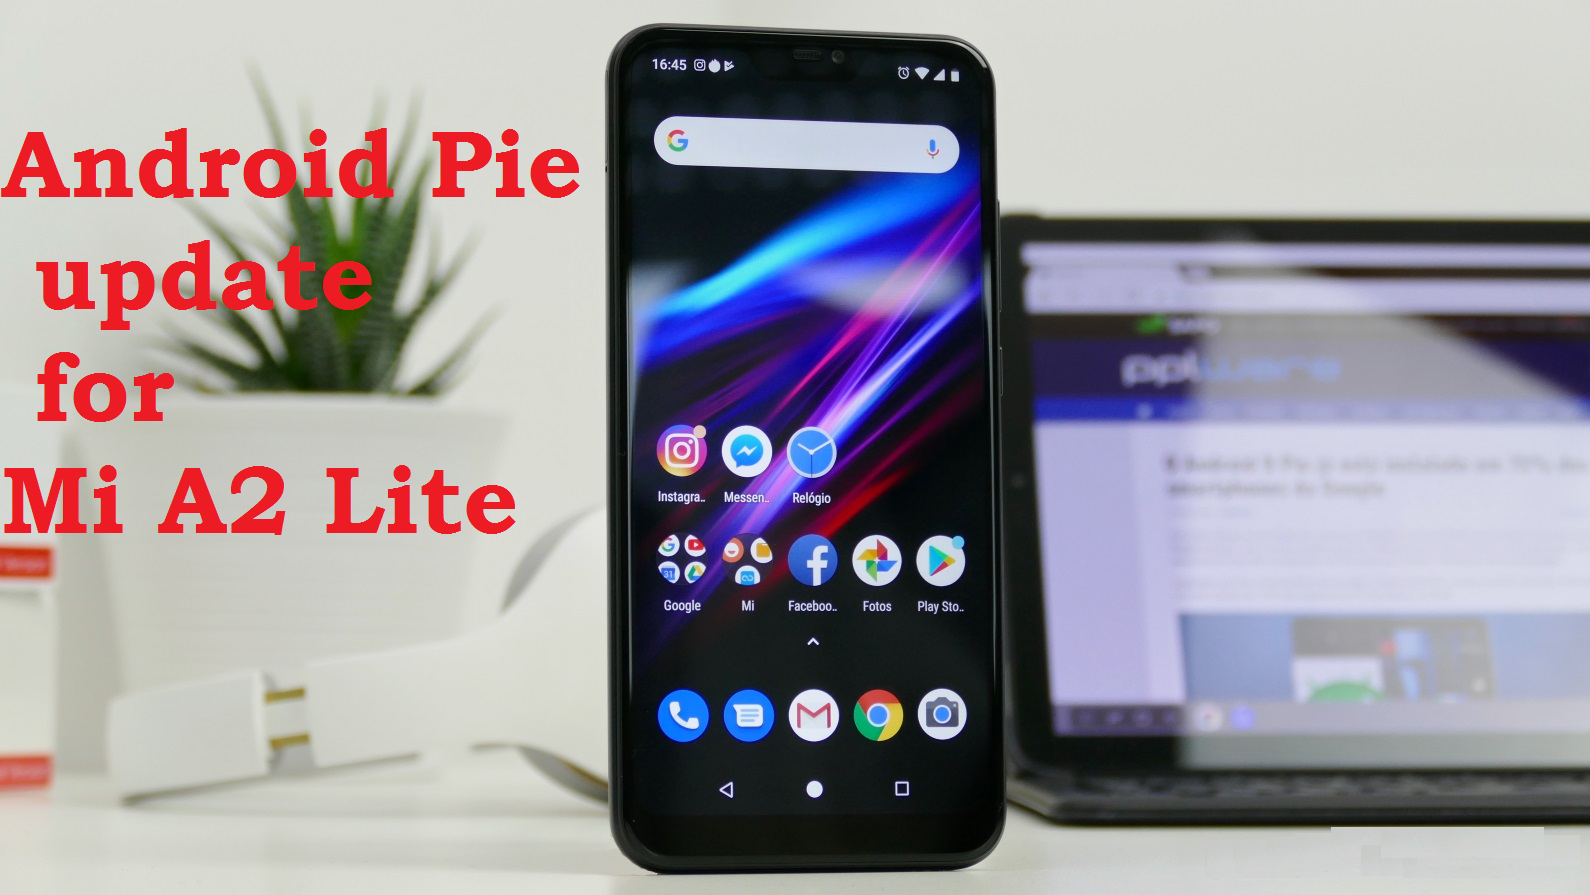 Guide To Install Stable Android Pie Update For Mi A2 Lite